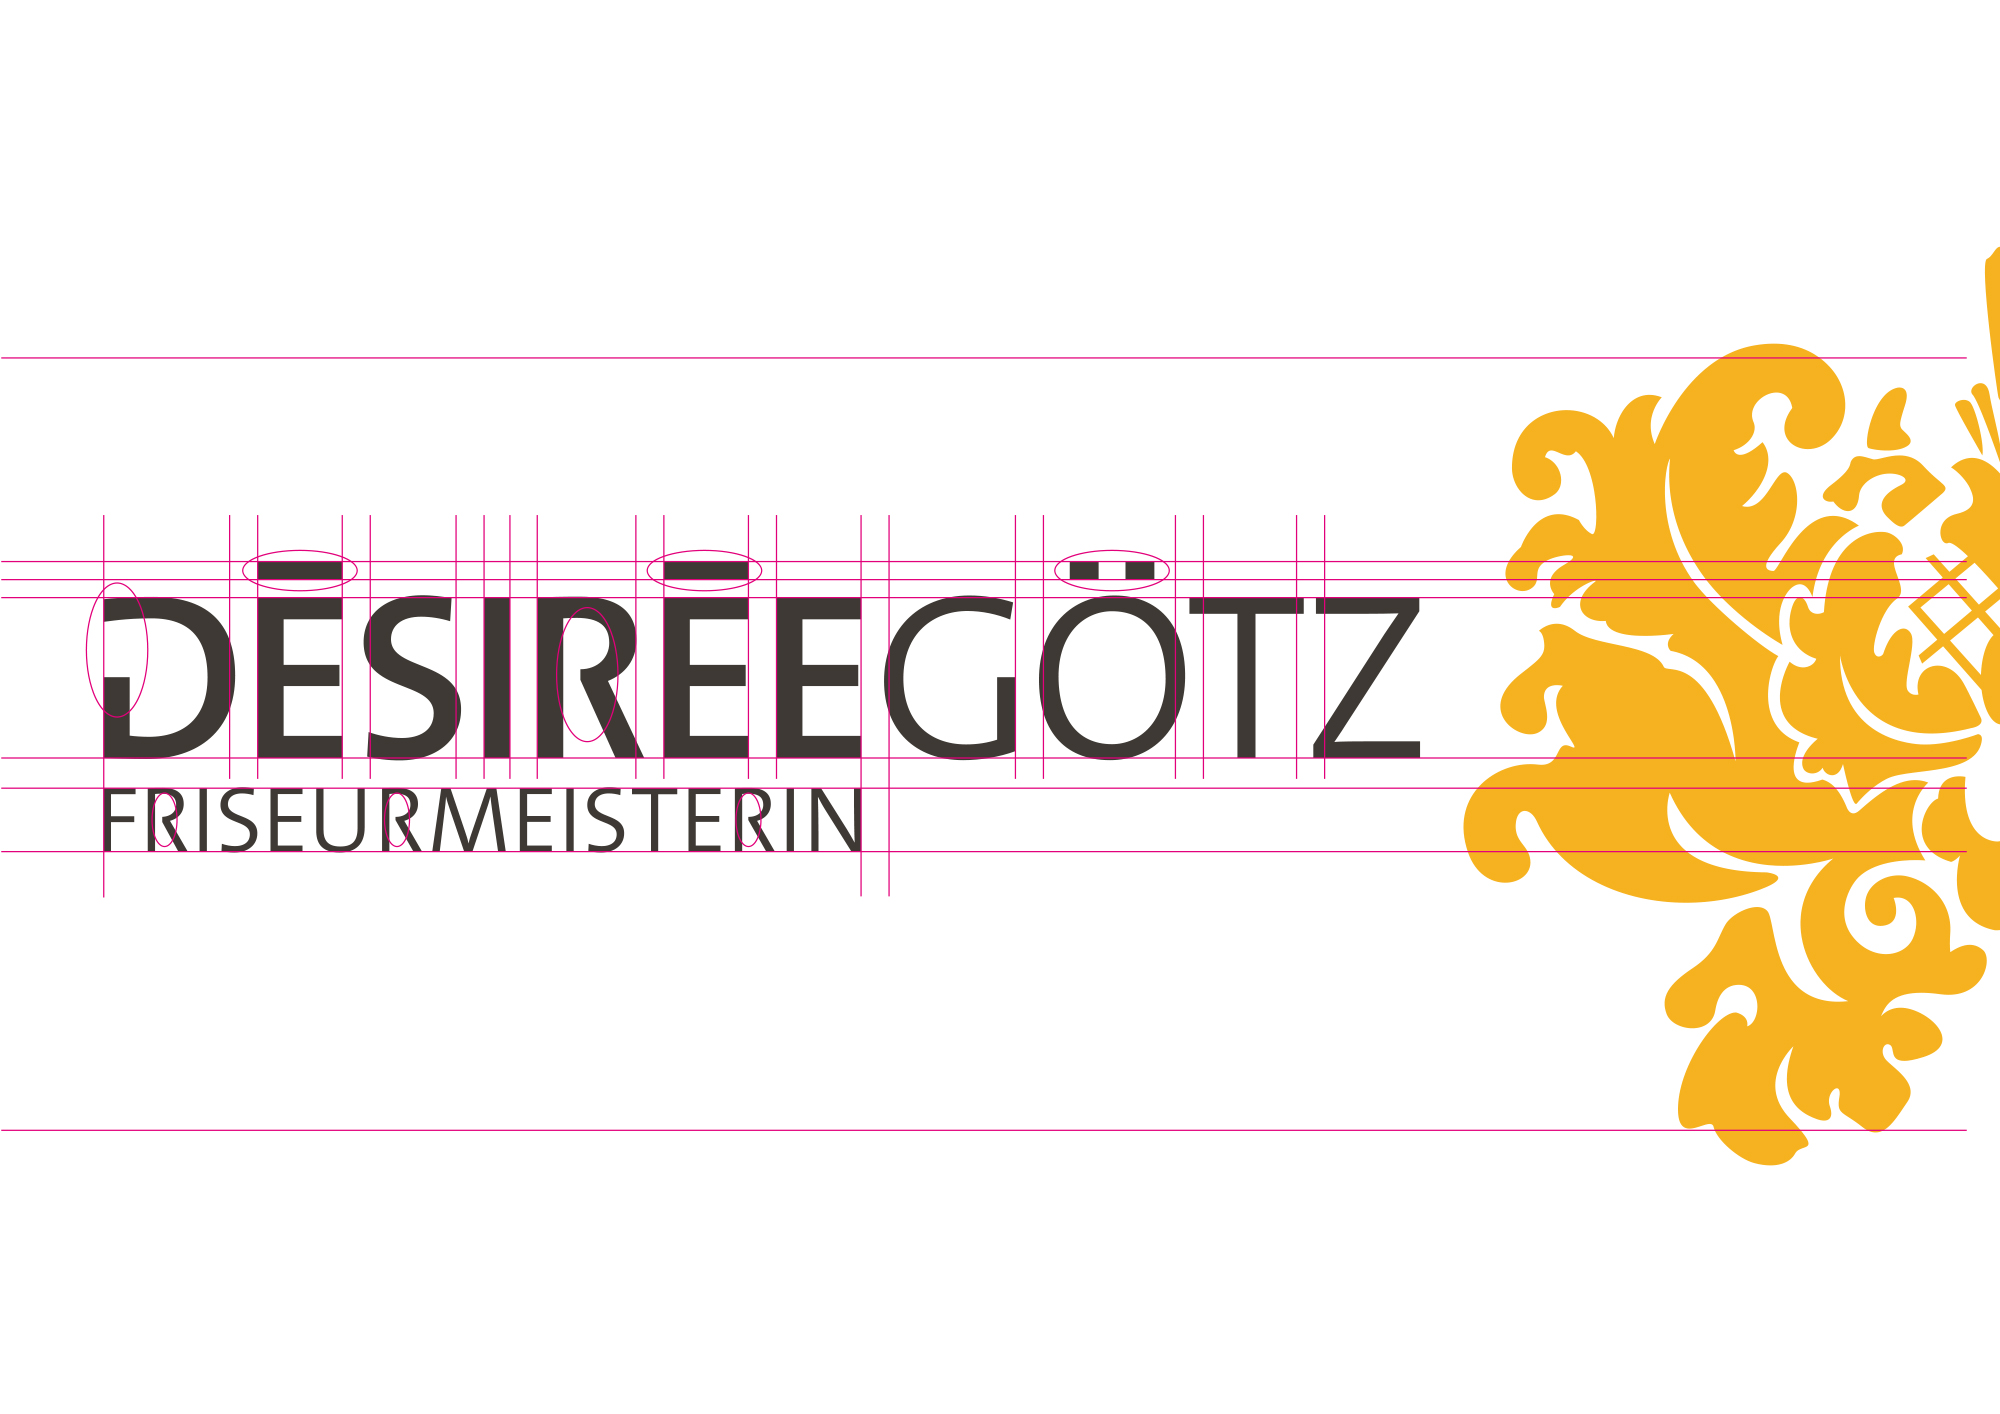 DesireeGoetz_Logo_Right_Details.jpg?fit=2000%2C1414